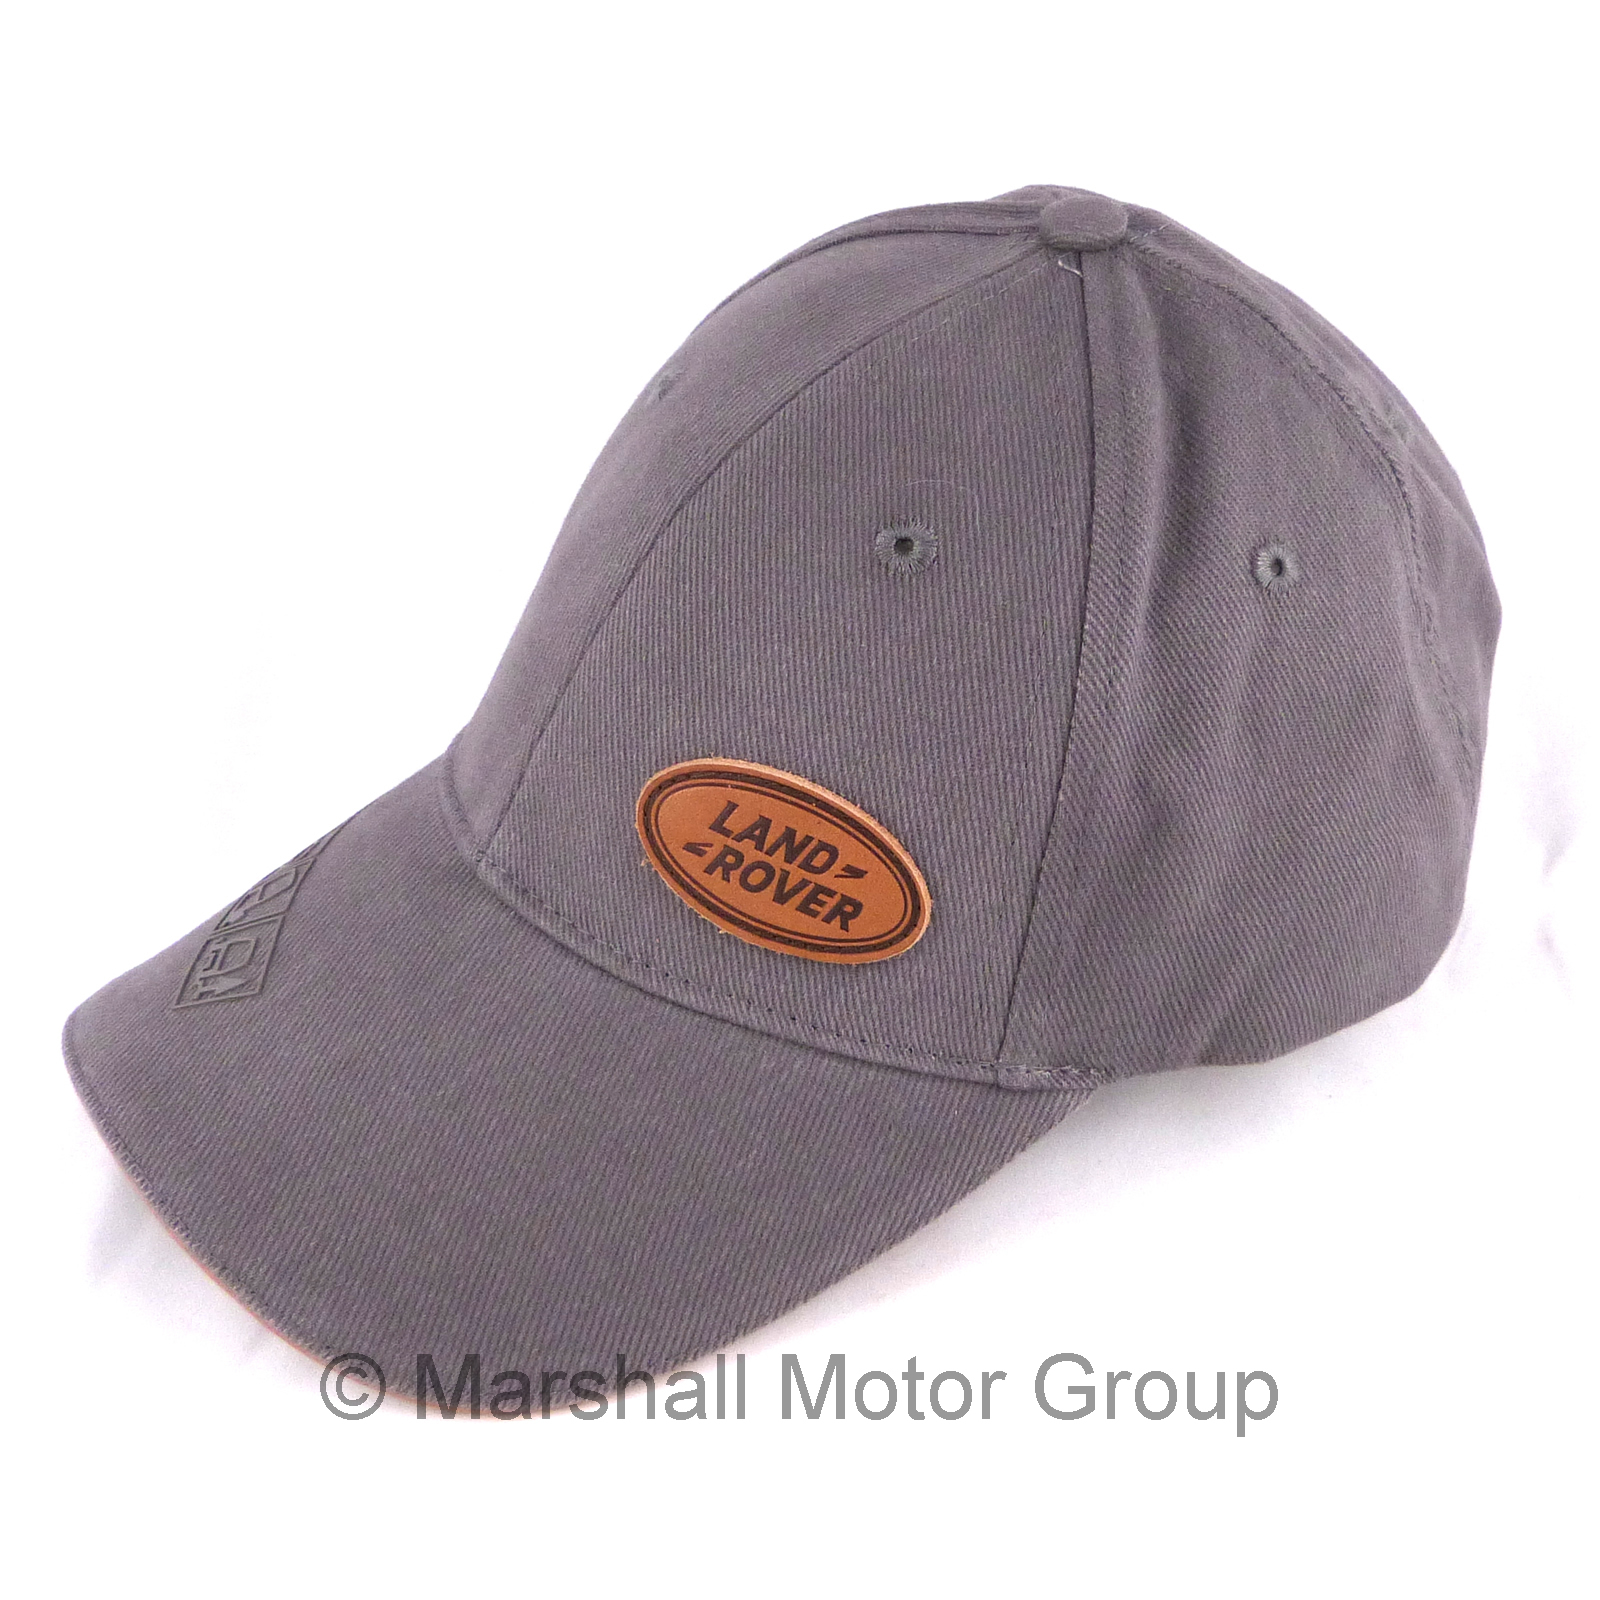 Genuine Land Rover Baseball Cap In Grey